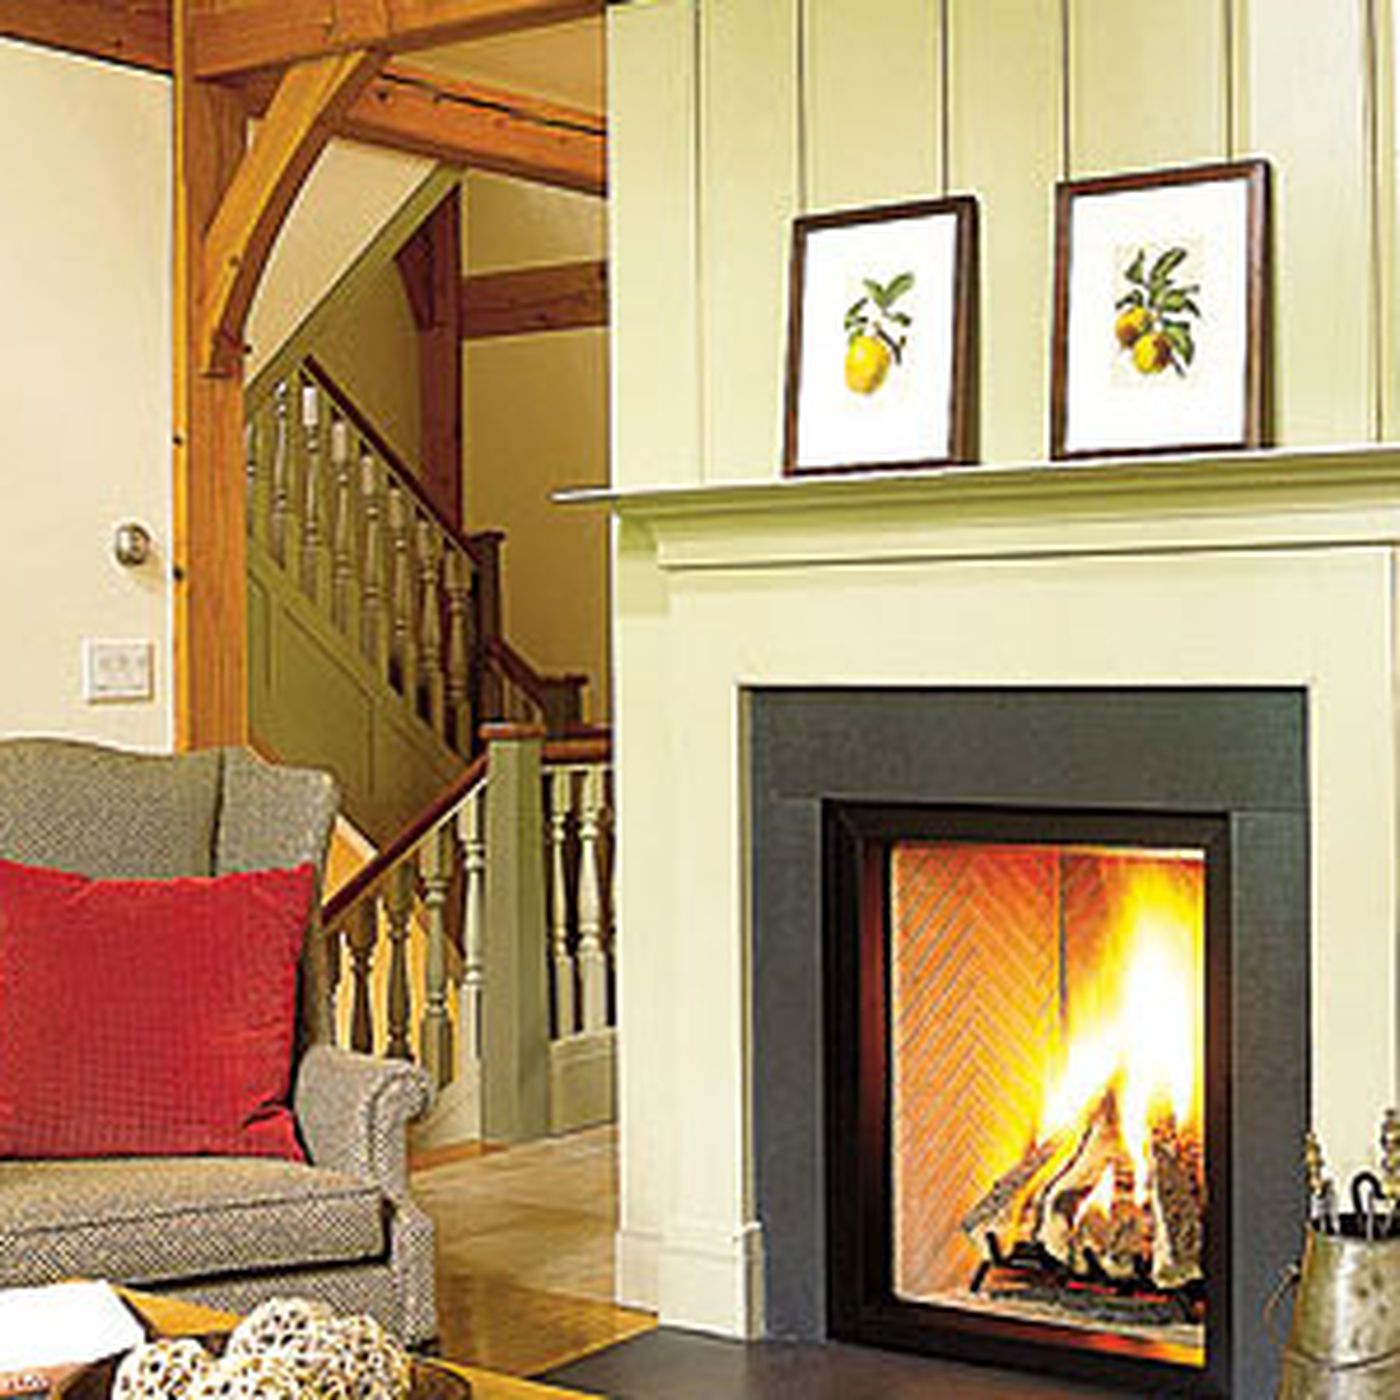 6 Ideas For Elder Friendly Design This Old House